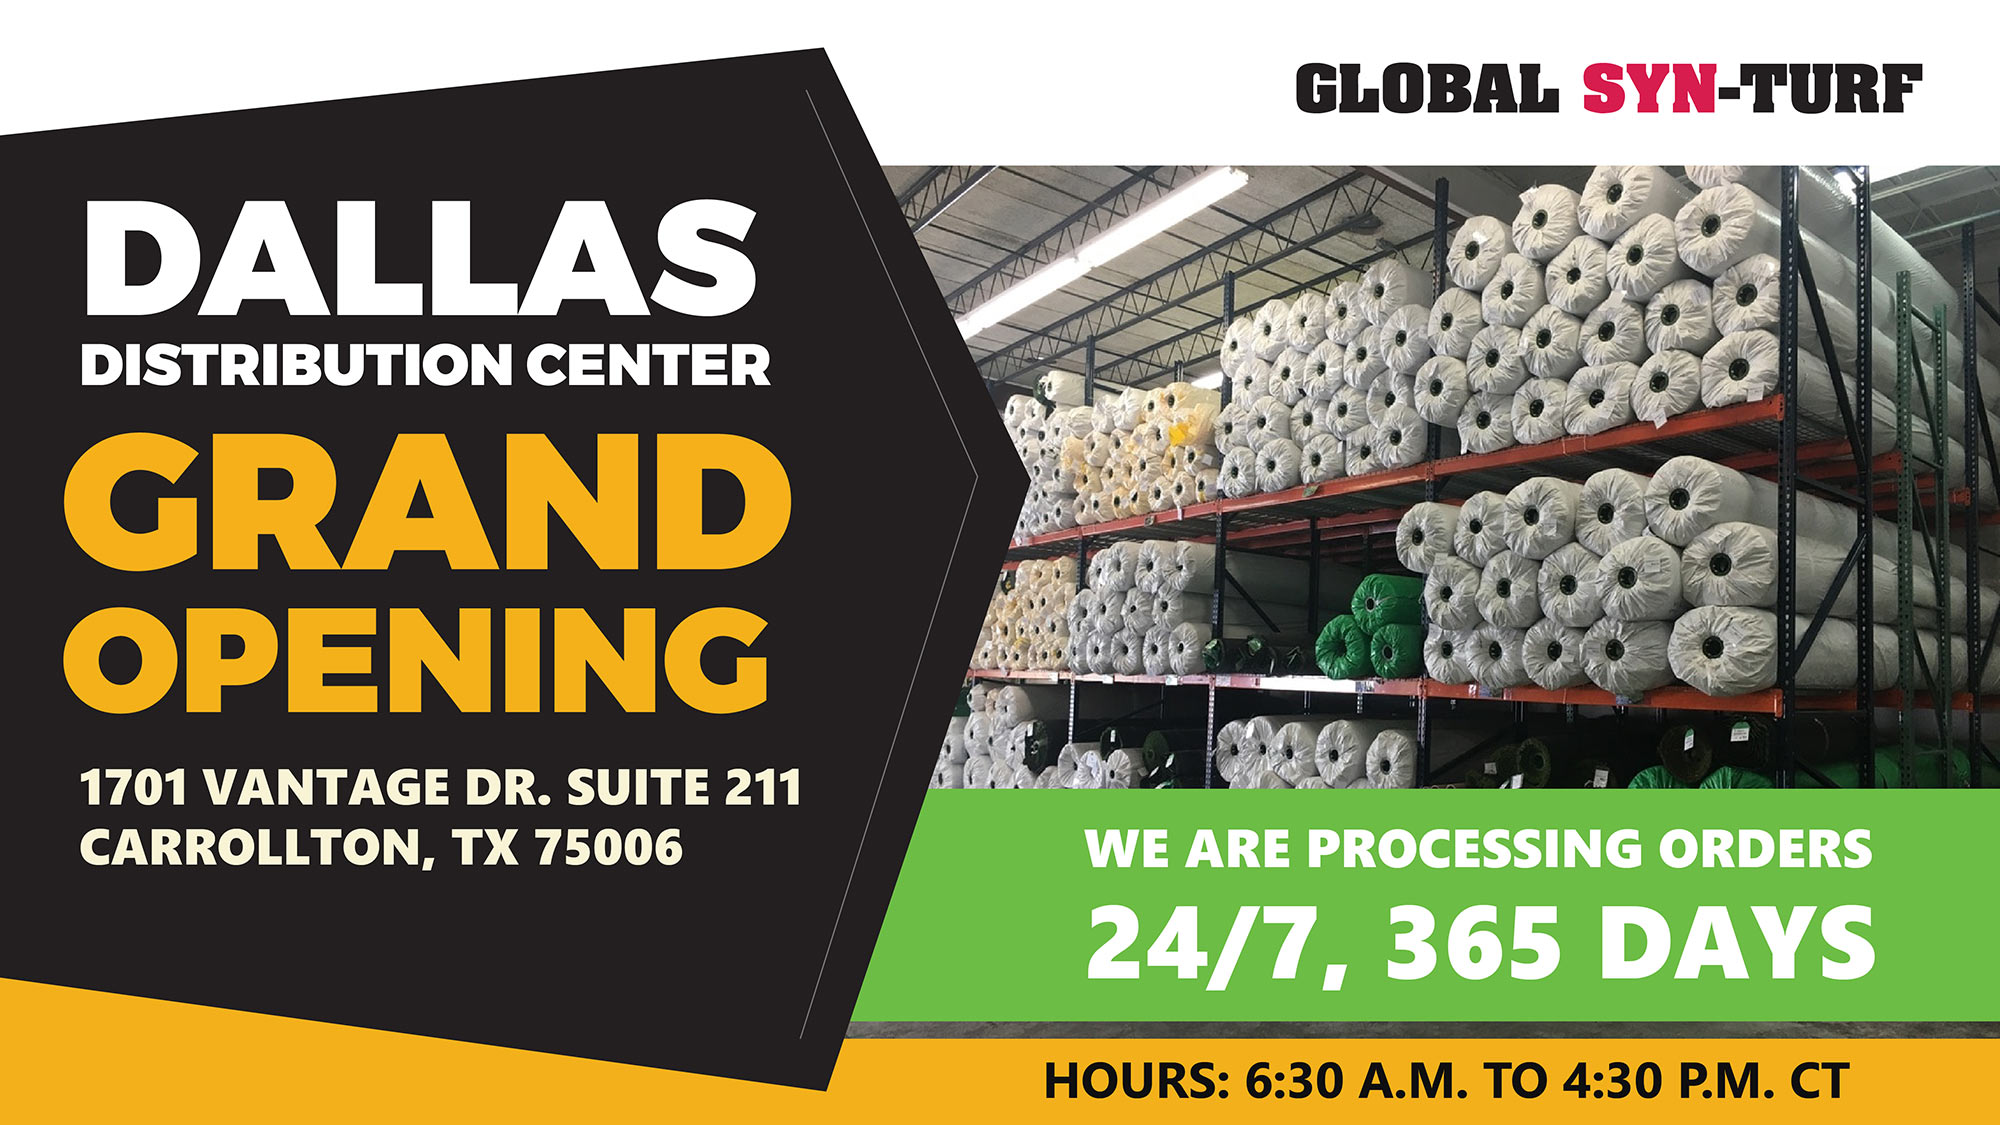 Dallas Artificial Grass Distribution Center and Warehouse Grand Opening